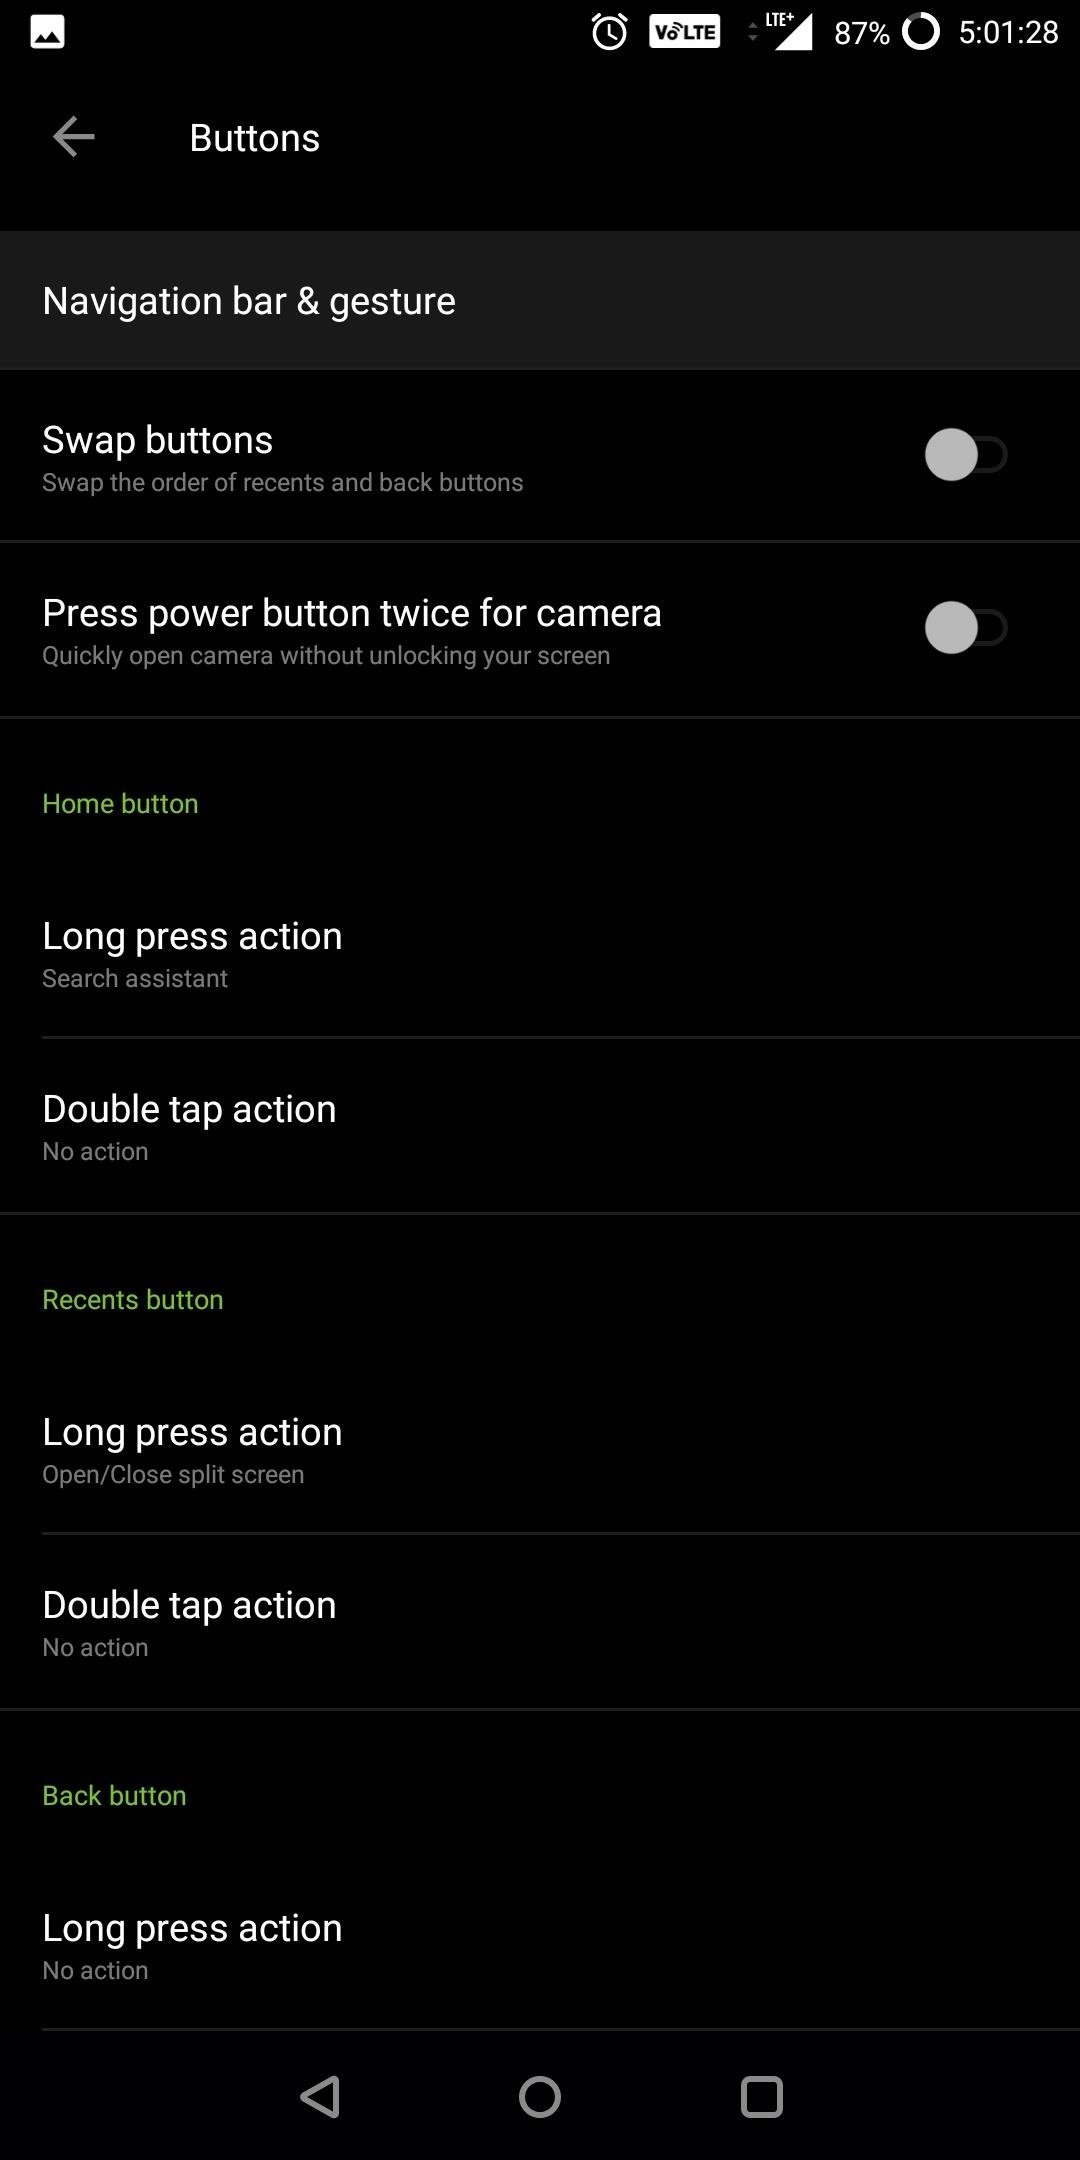 6 Cool New Features in Android 8.1 for the OnePlus 5 & 5T